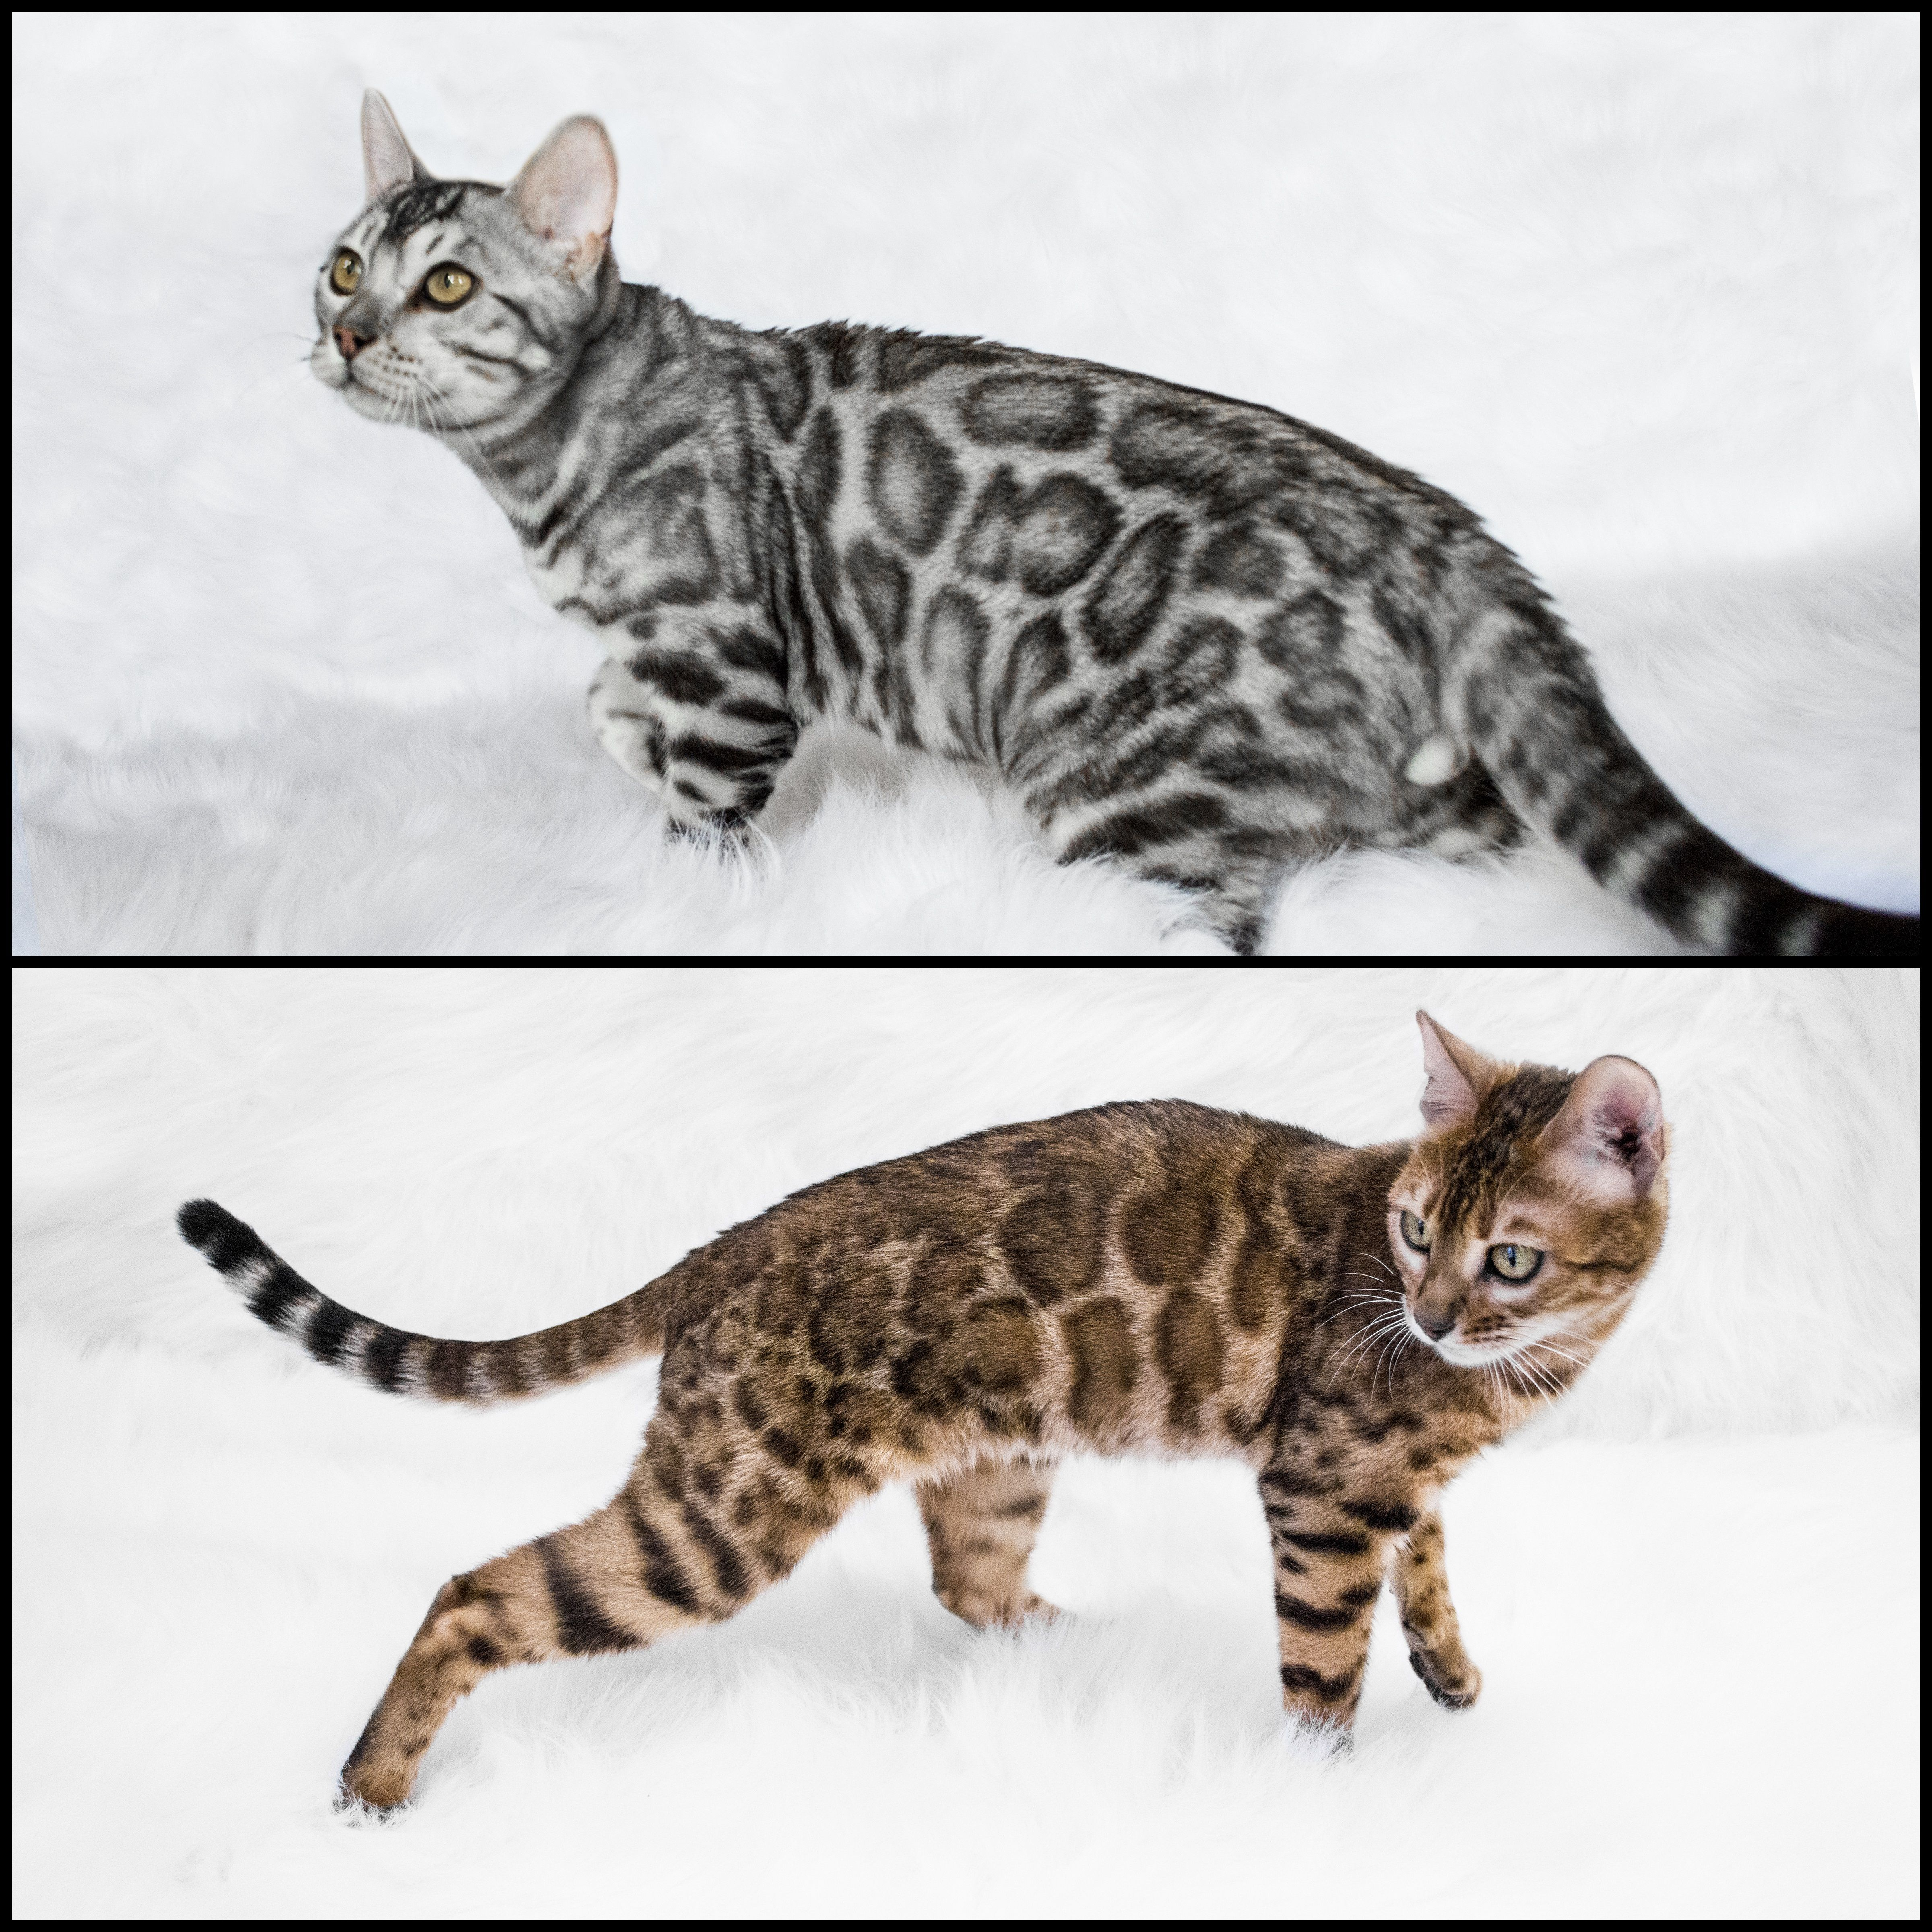 5 Wonderful Bengal Kittens Of All Color Were Born From This Beautiful Mating Karat Has Silver Blue Brown And Even Bengal Kitten Tabby Cat Orange Tabby Cats